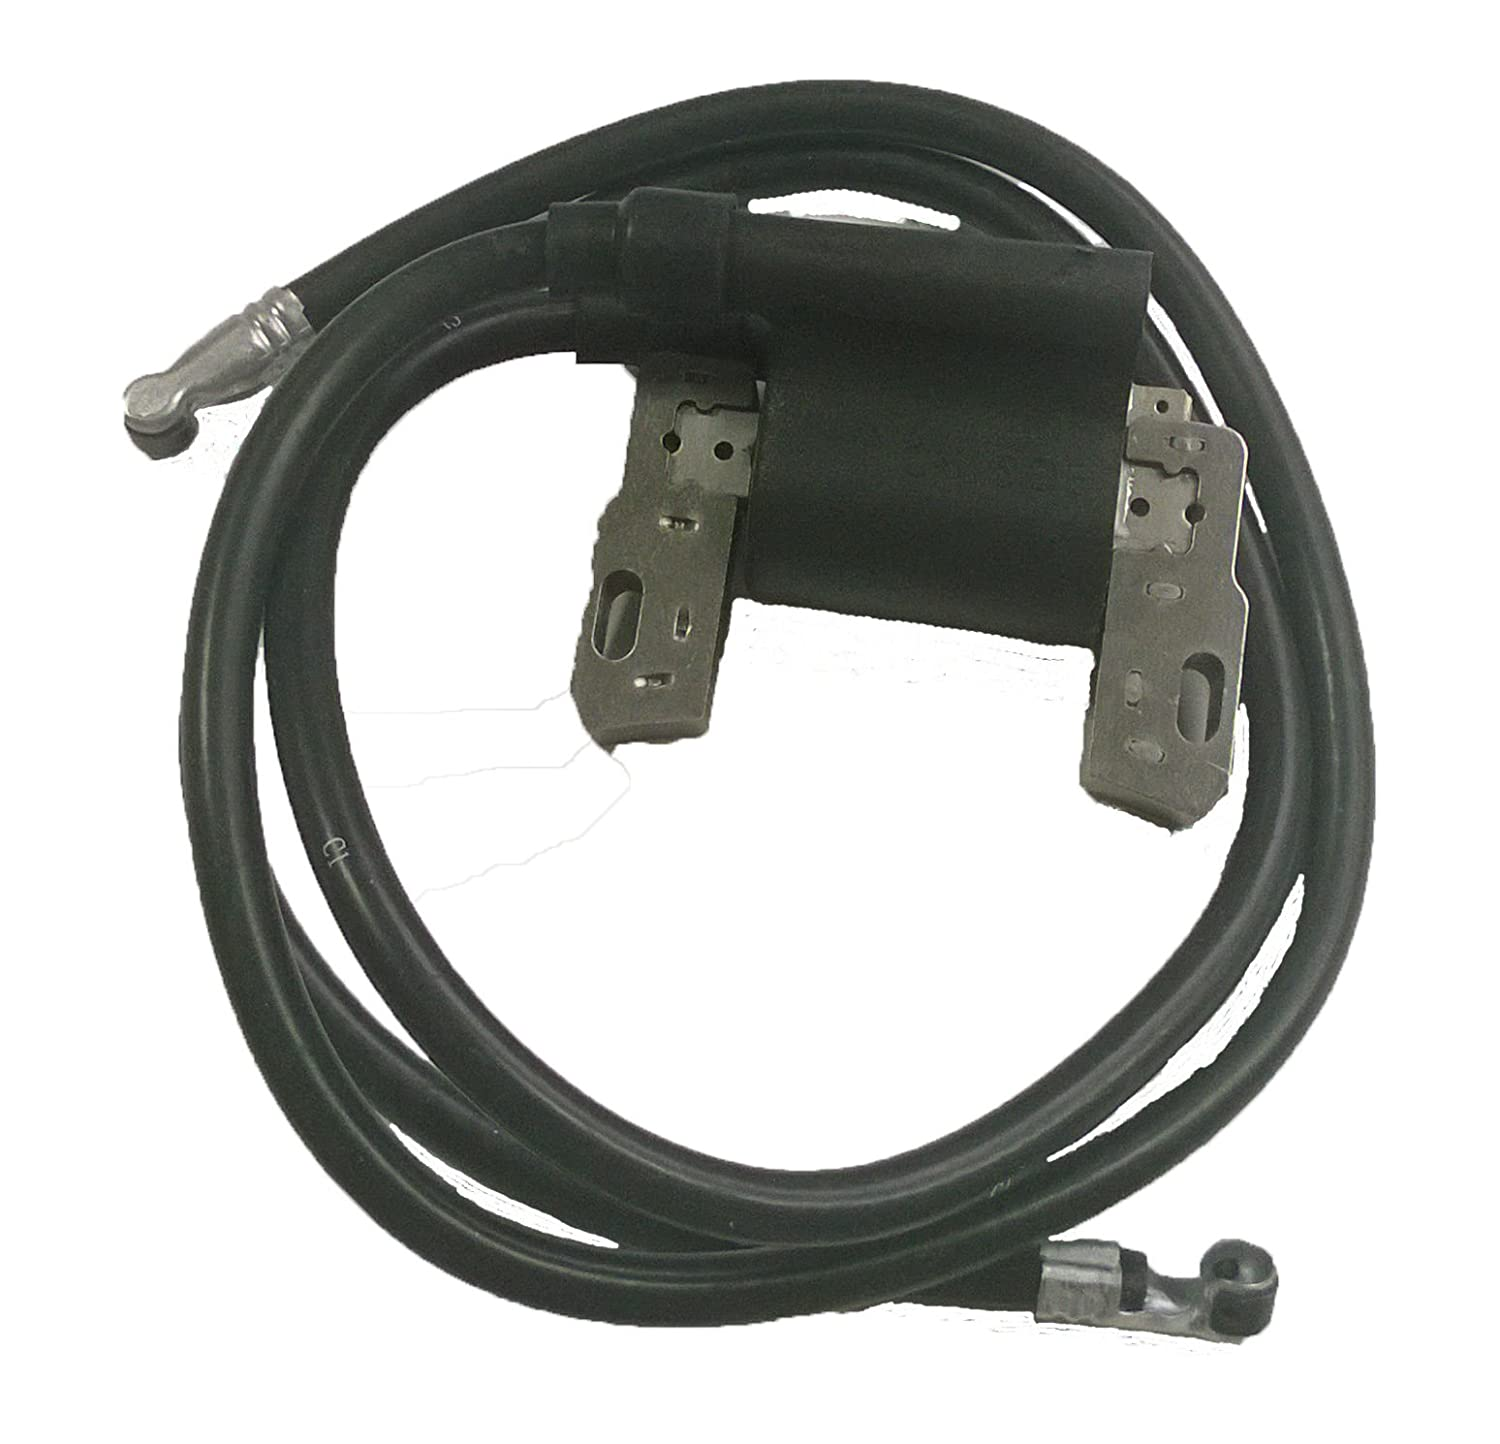 New Twin Cylinder IGNITION COIL//MODULE 16-18 HP for Briggs /& Stratton 394891